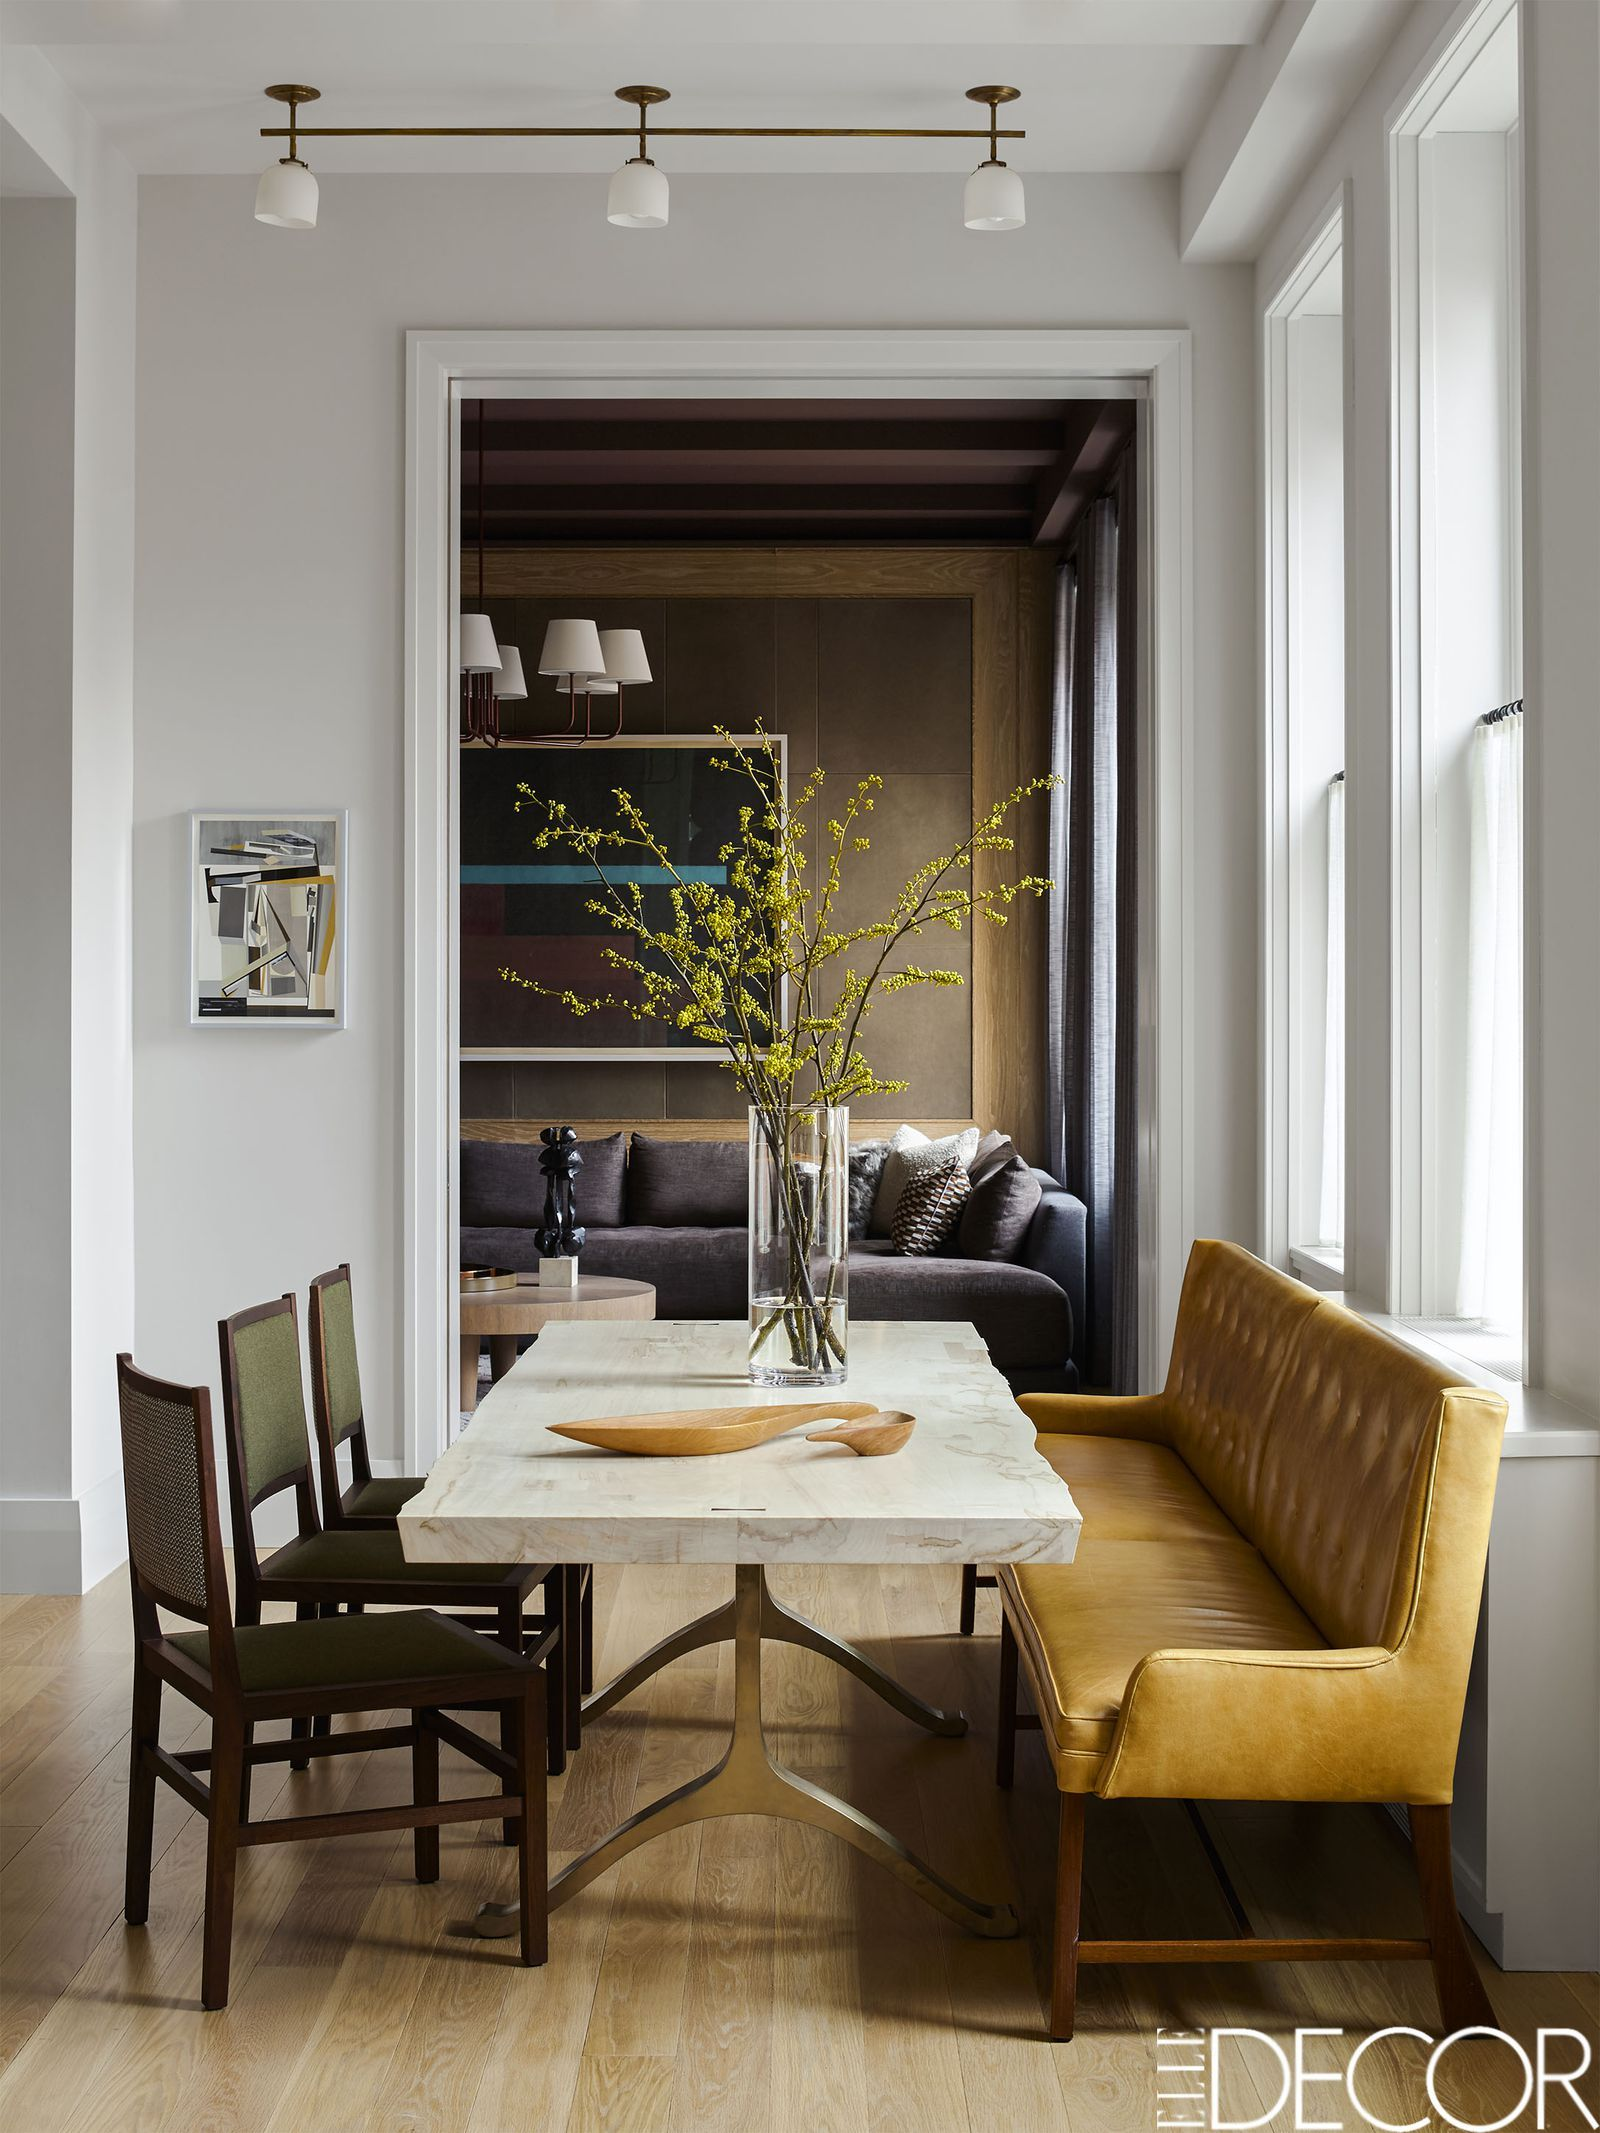 Inside  tribeca family loft filled with mid century modern furniture and art elledecor also elwood by robson rak architecture  interiors australian interior rh pinterest